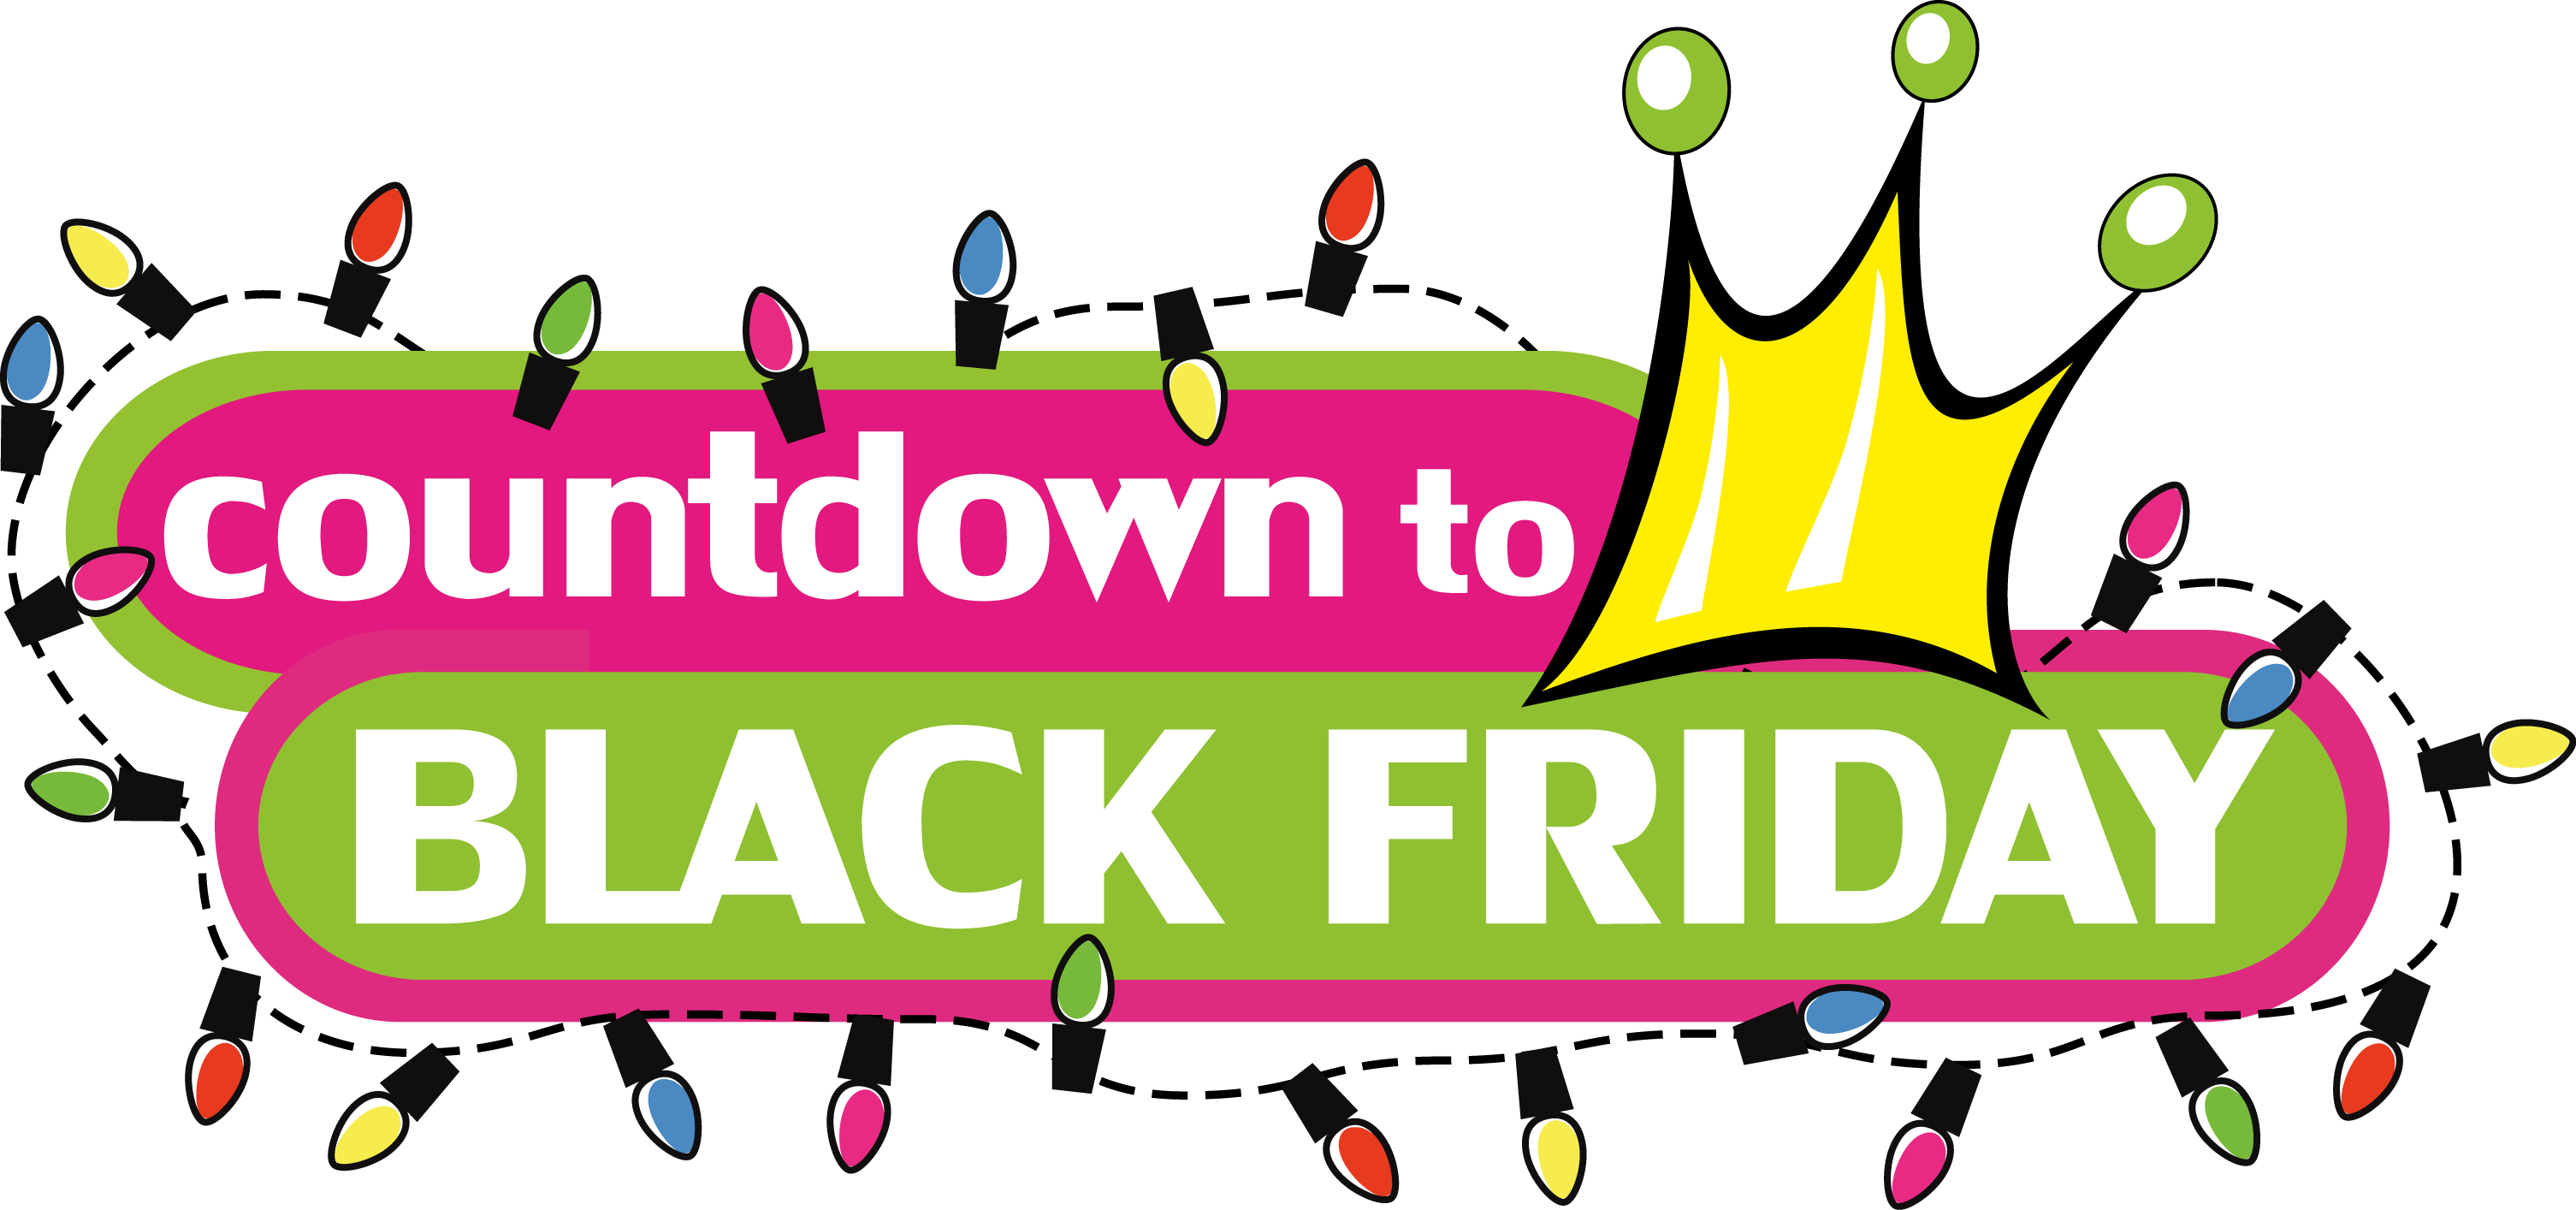 countdown to black friday 2015 images